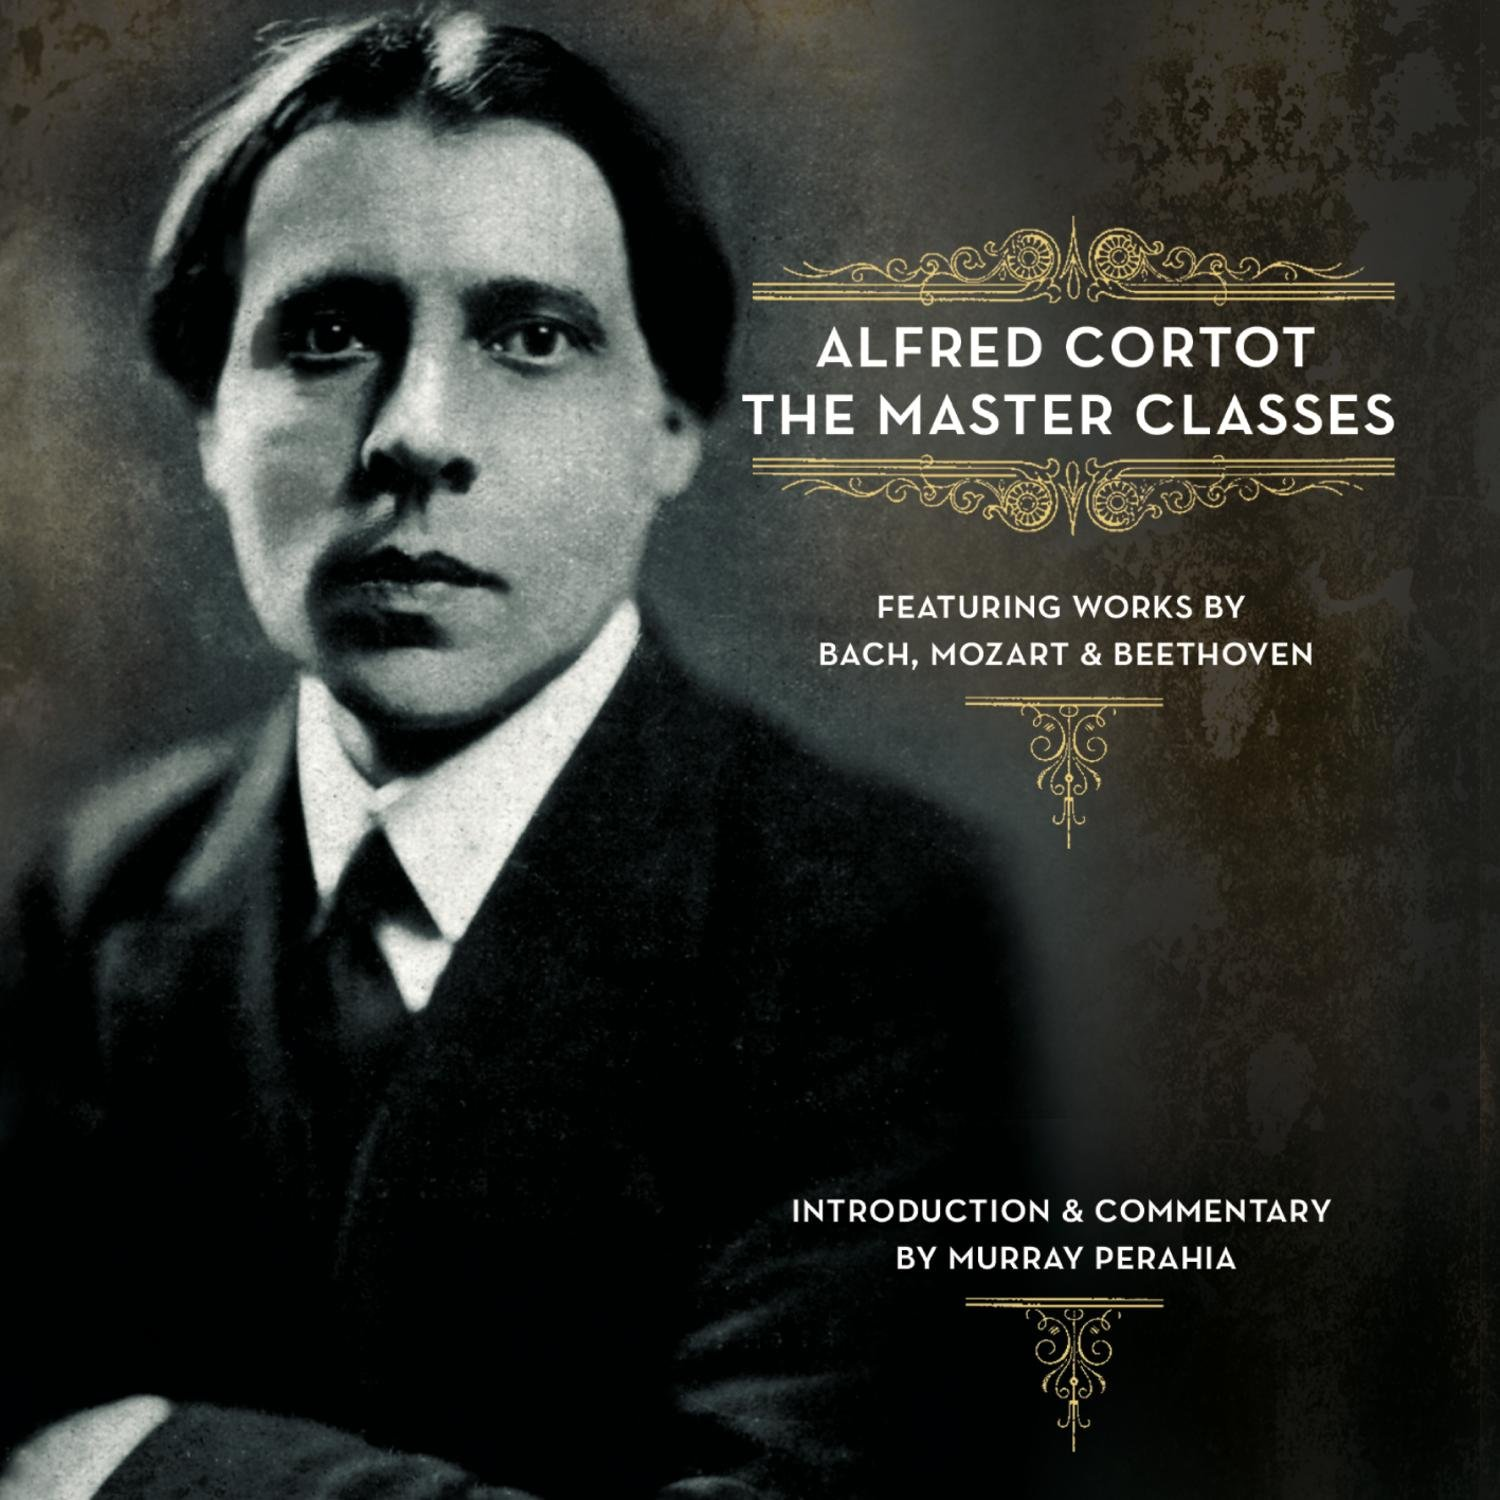 Alfred Cortot: The Master Classes by Sony Classical